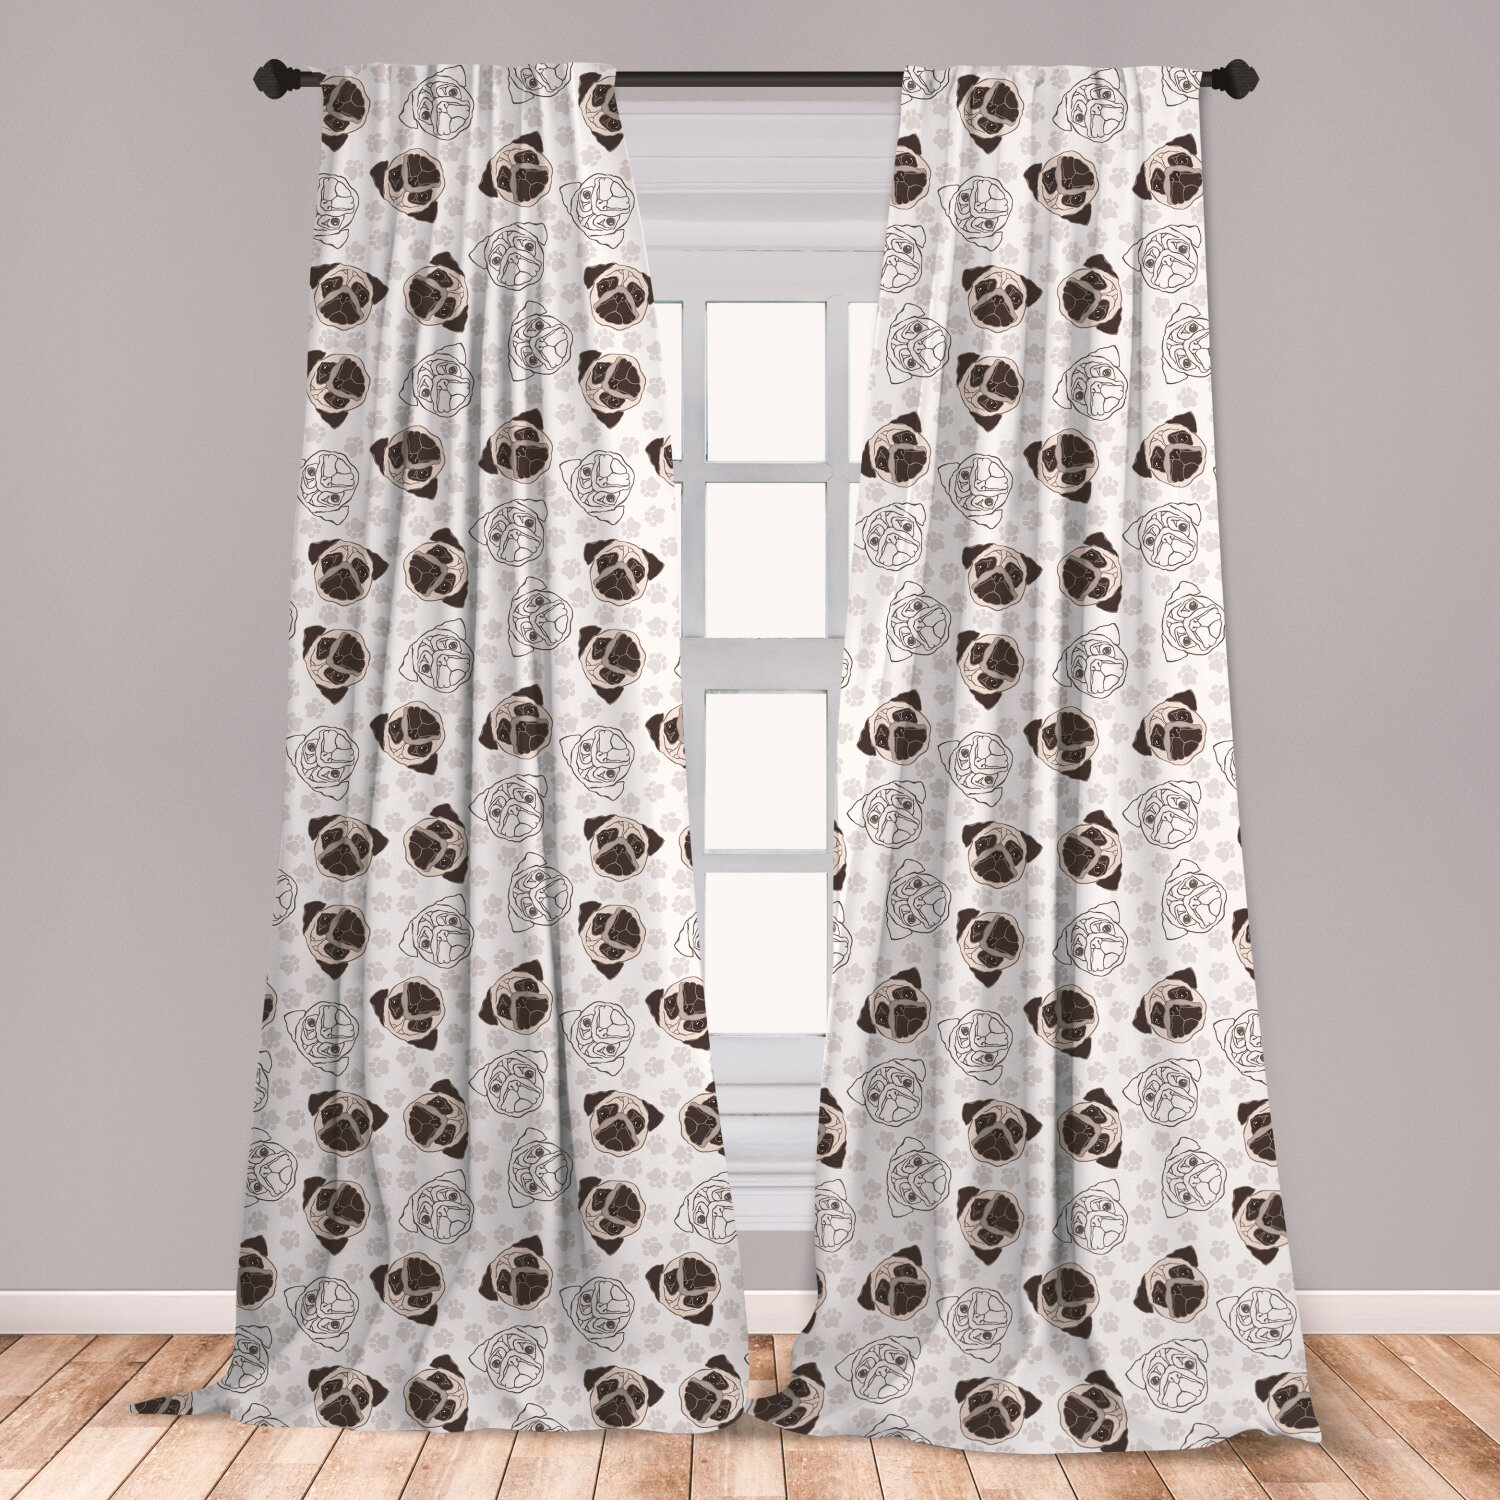 Valance Curtain Panel Tie Back Wildlife Pillow Cover